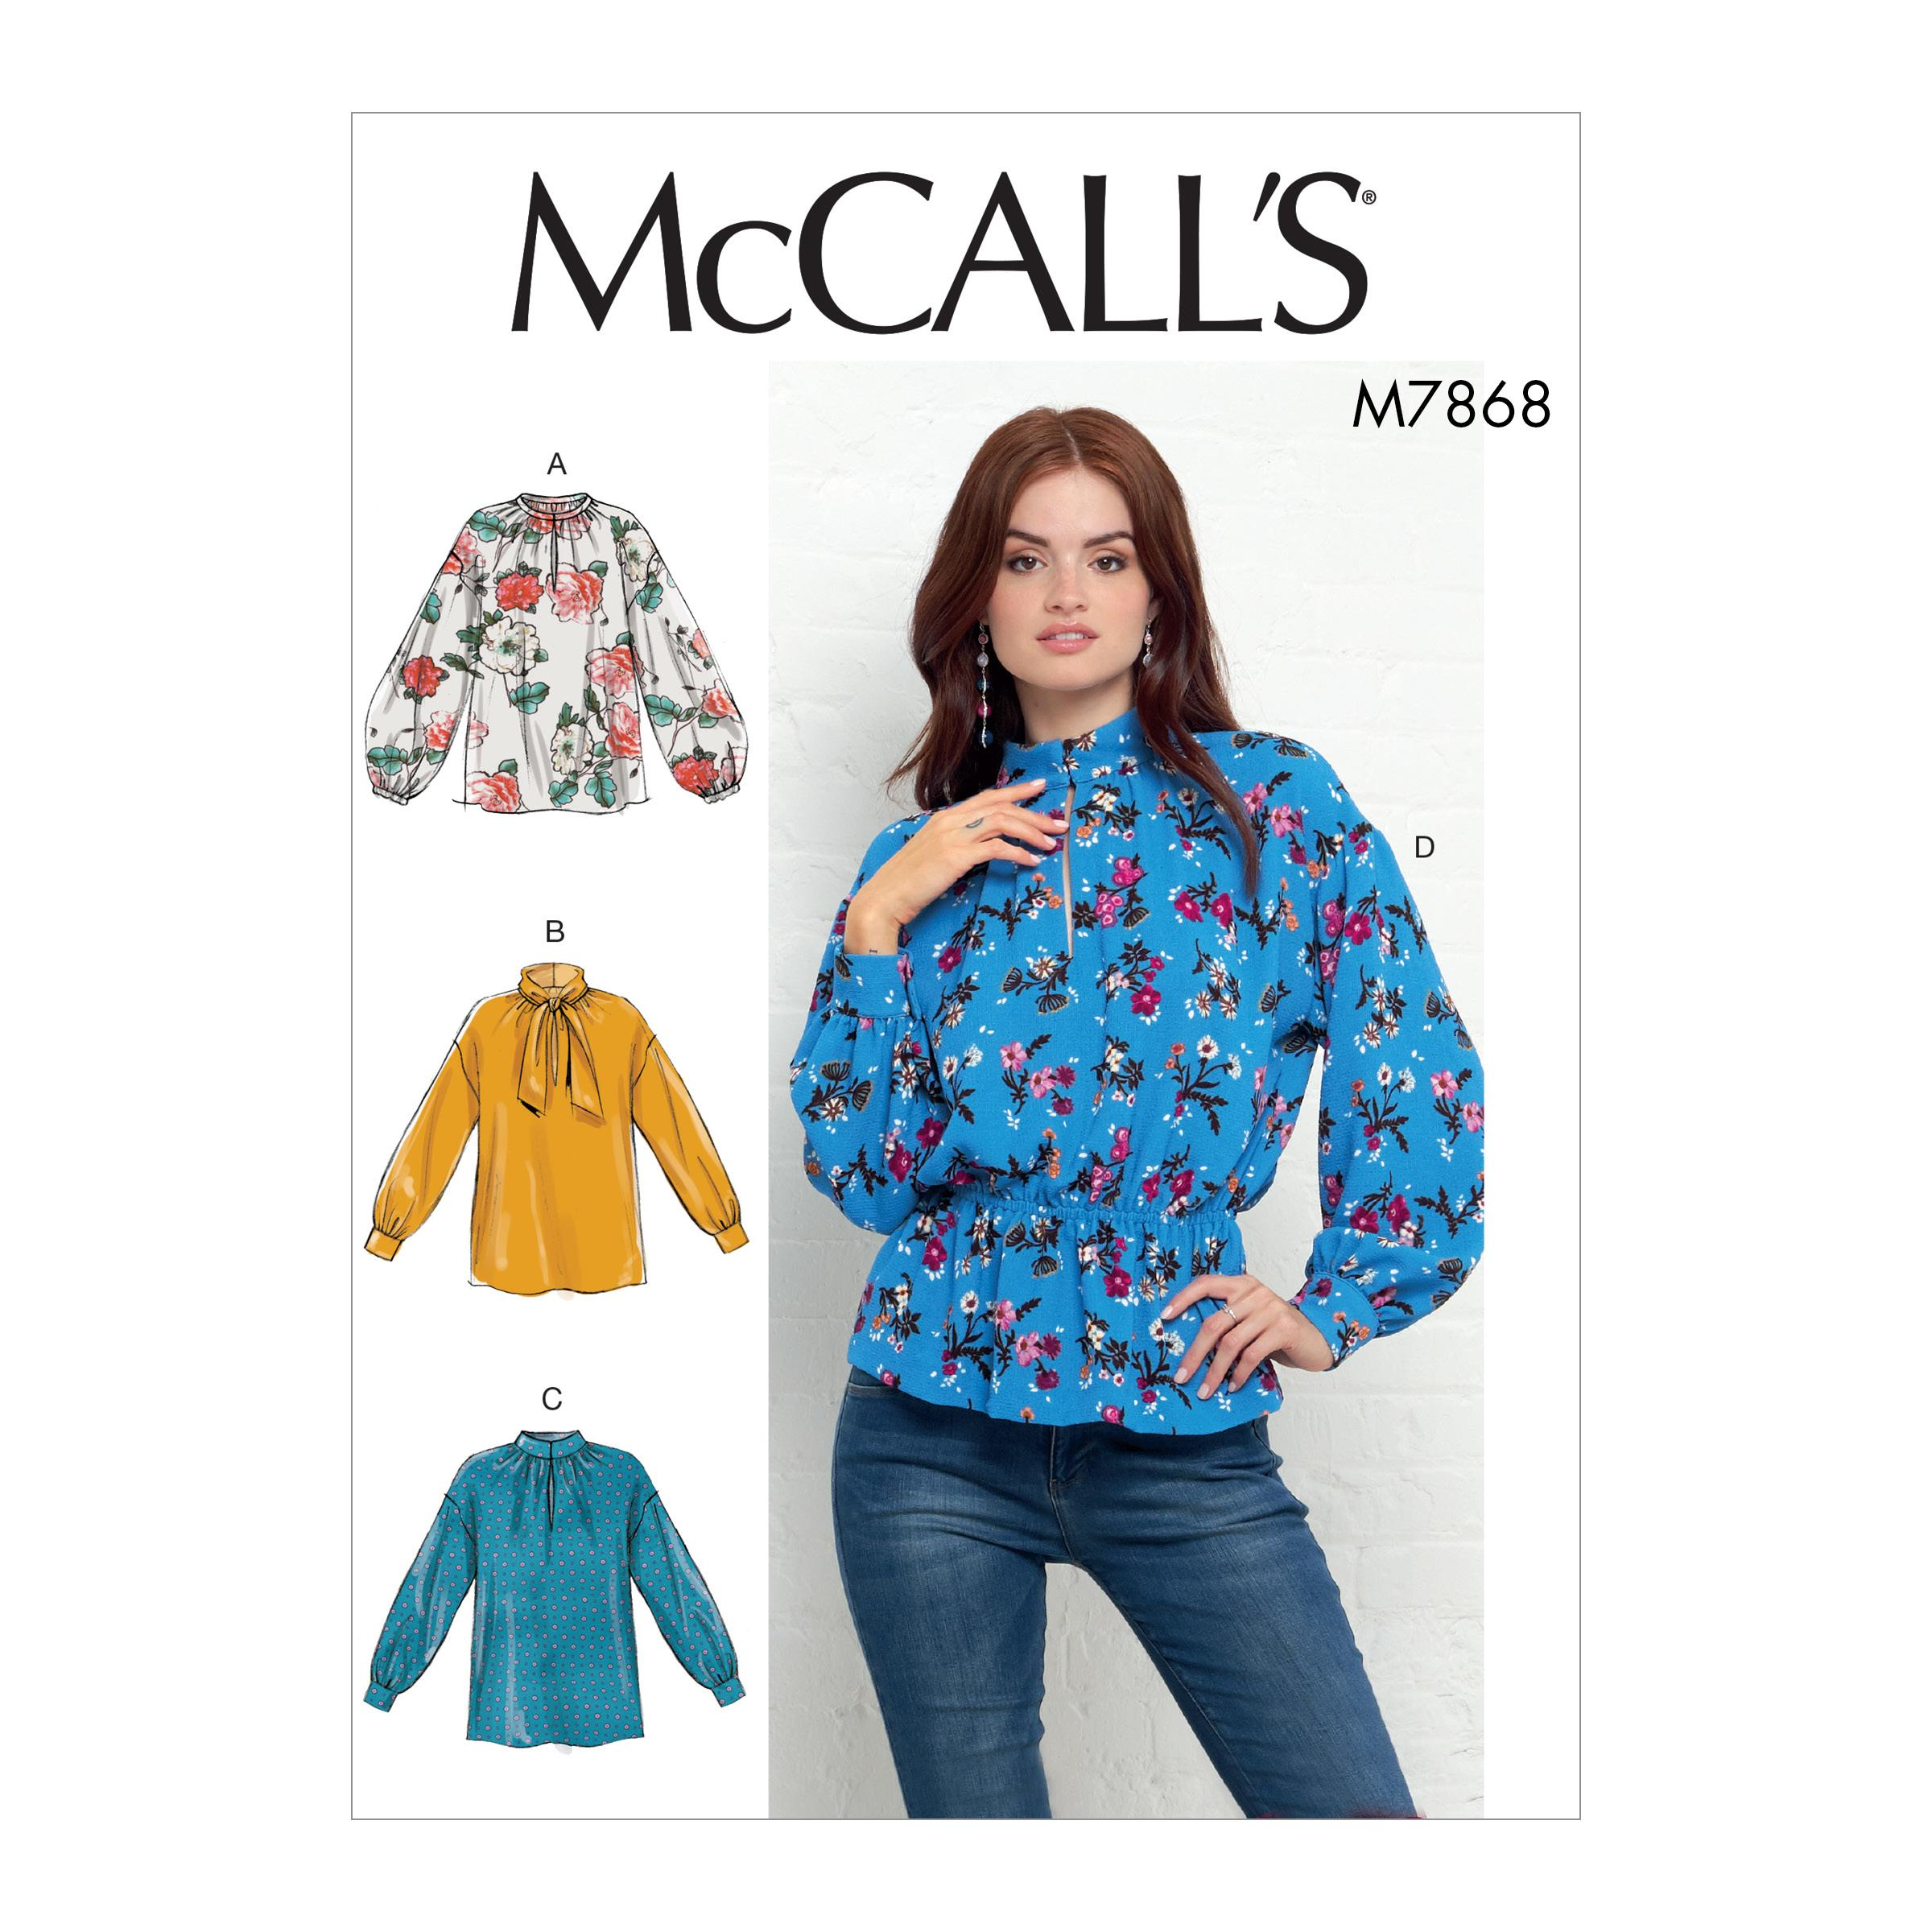 McCalls M7868 Misses Tops